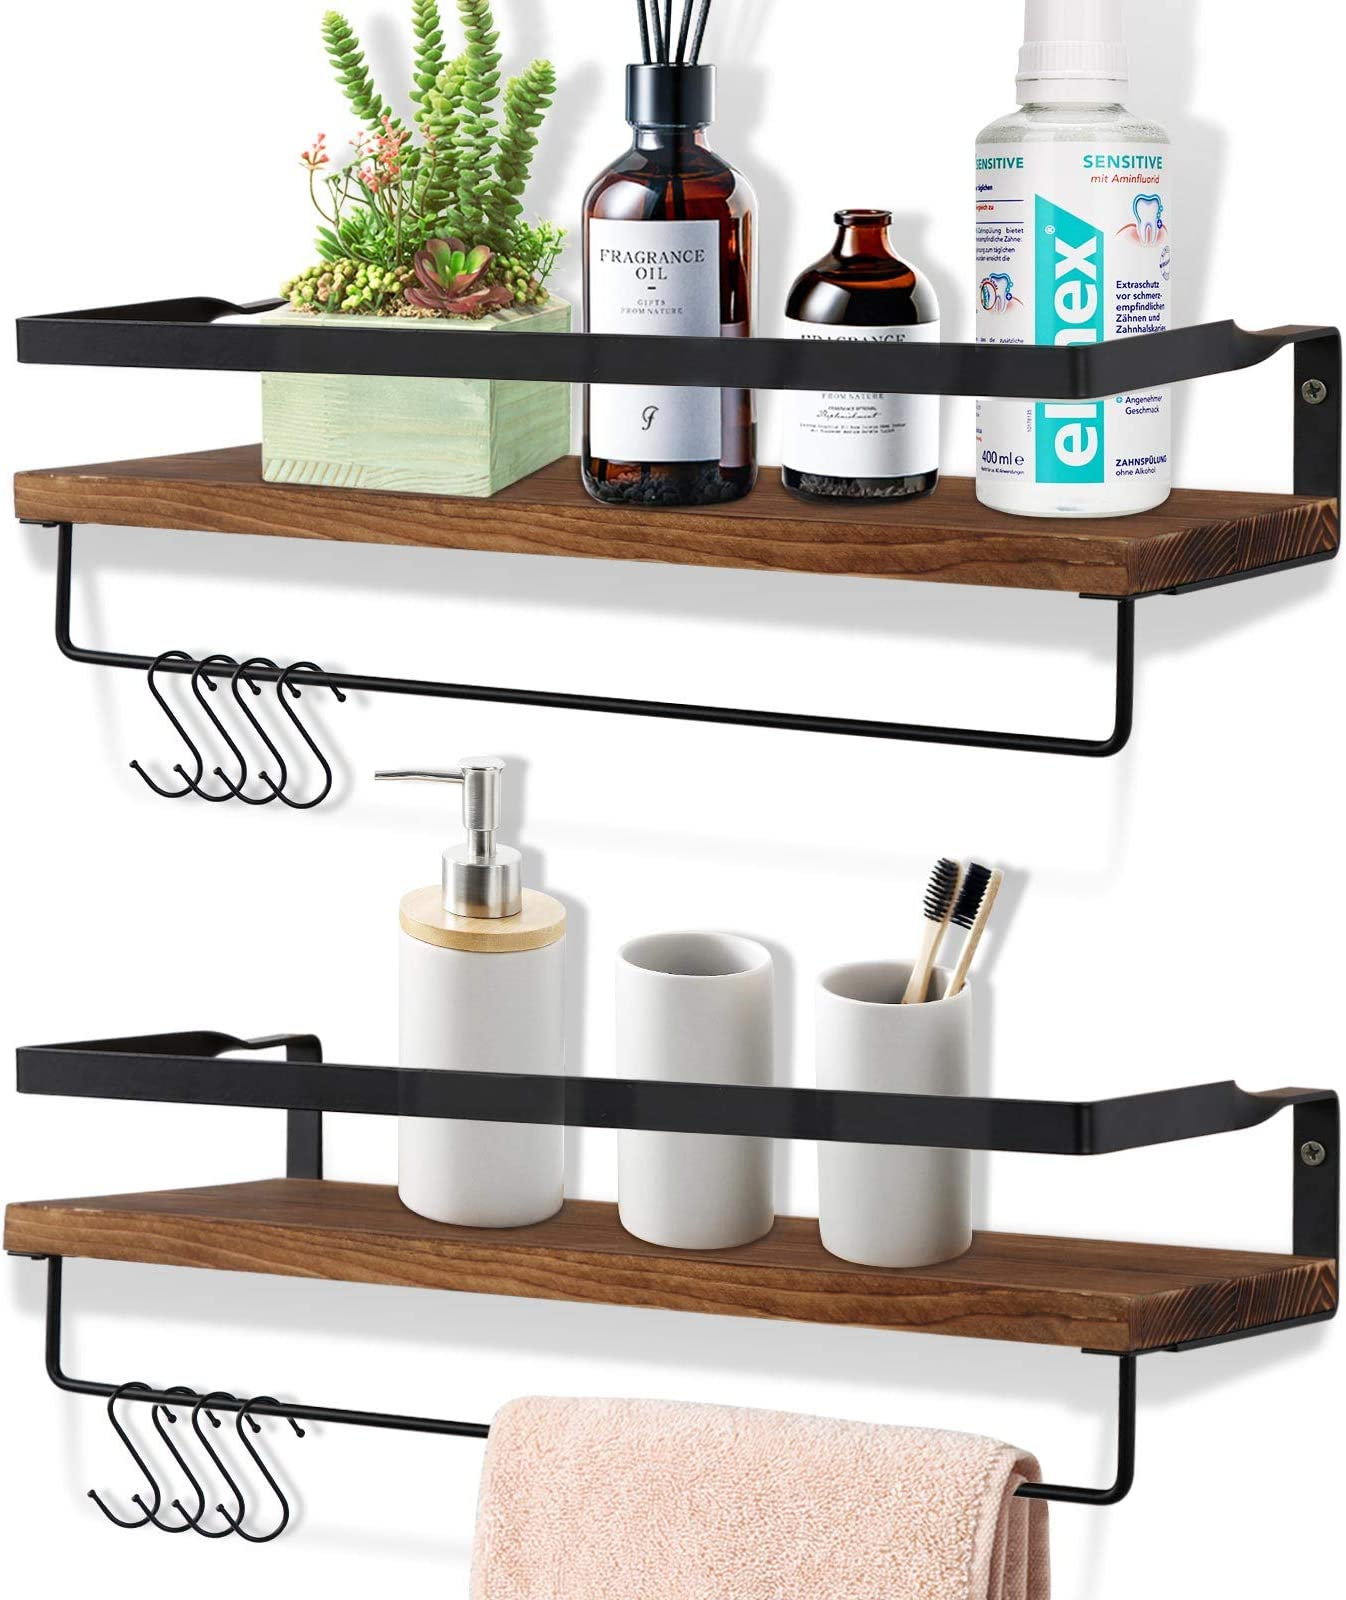 OurWarm Rustic Floating Shelves Wall Mounted Set of 2, Wood Wall Hanging Shelf for Bathroom, Living Room, Bedroom, Kitchen, Farmhouse Storage Shelves Organizer with 8 Removable Hooks and 2 Towel Bar